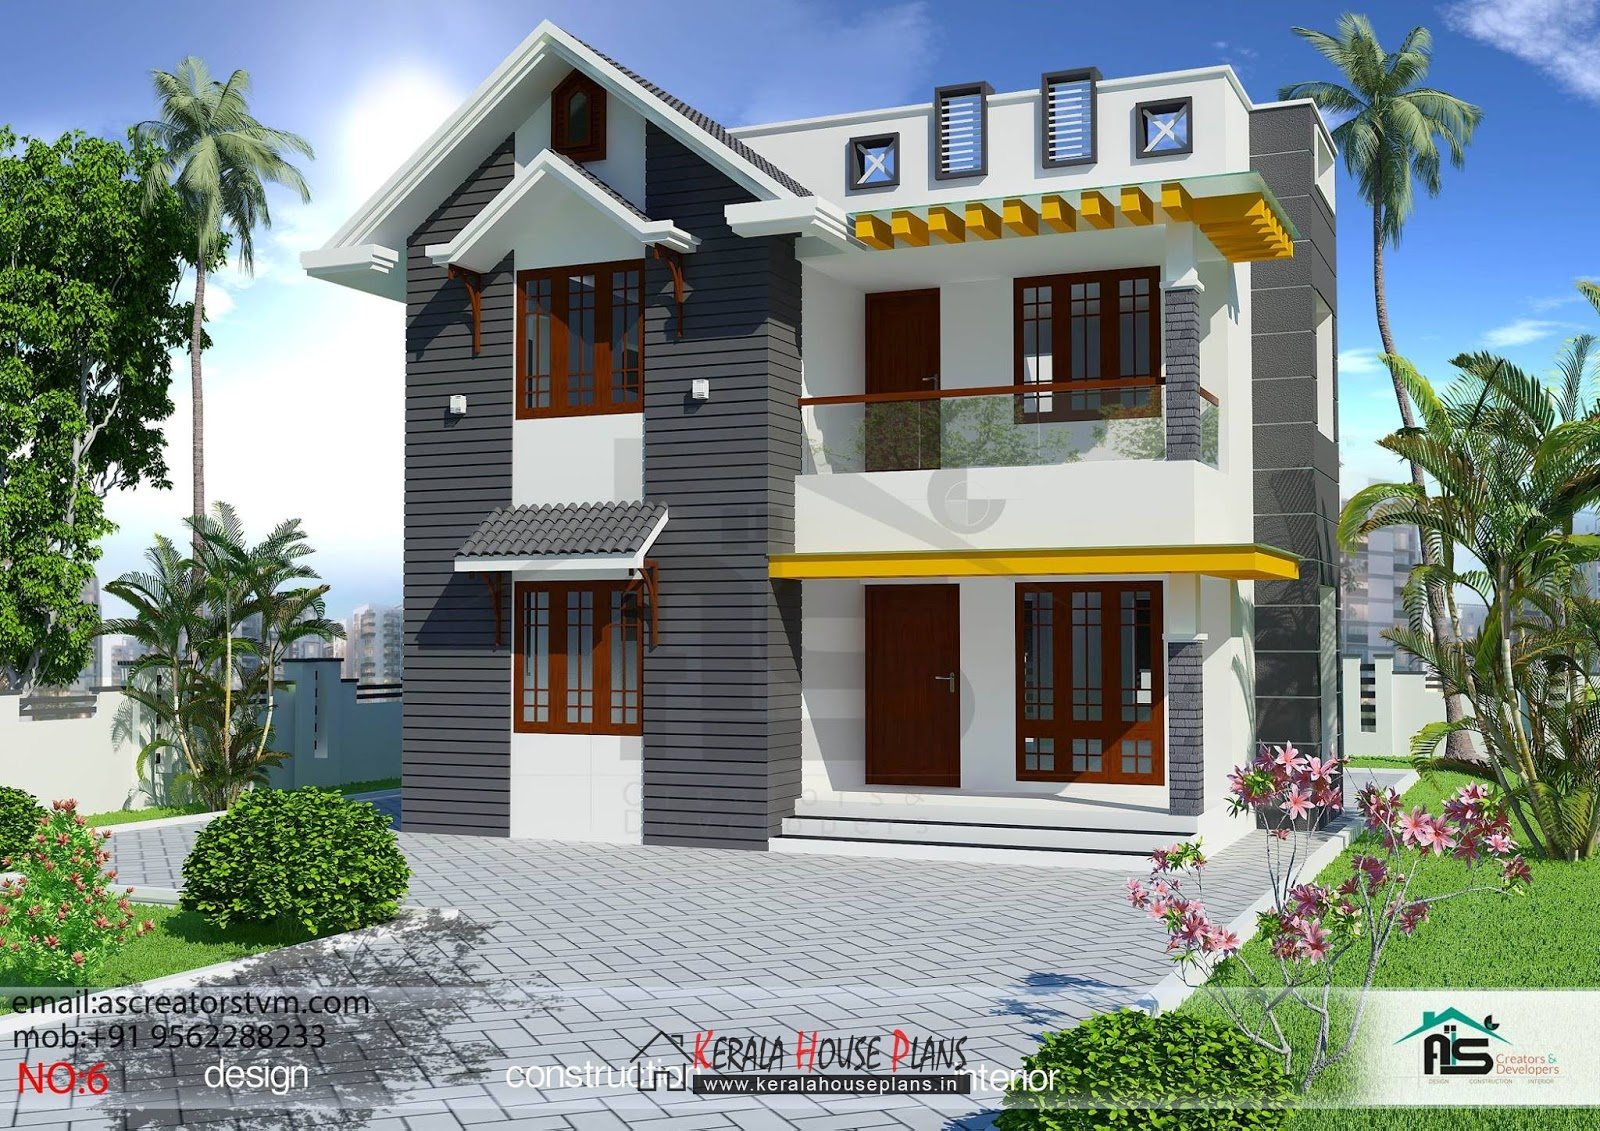 3 bedroom house plans in kerala double floor kerala for Kerala two bedroom house plans